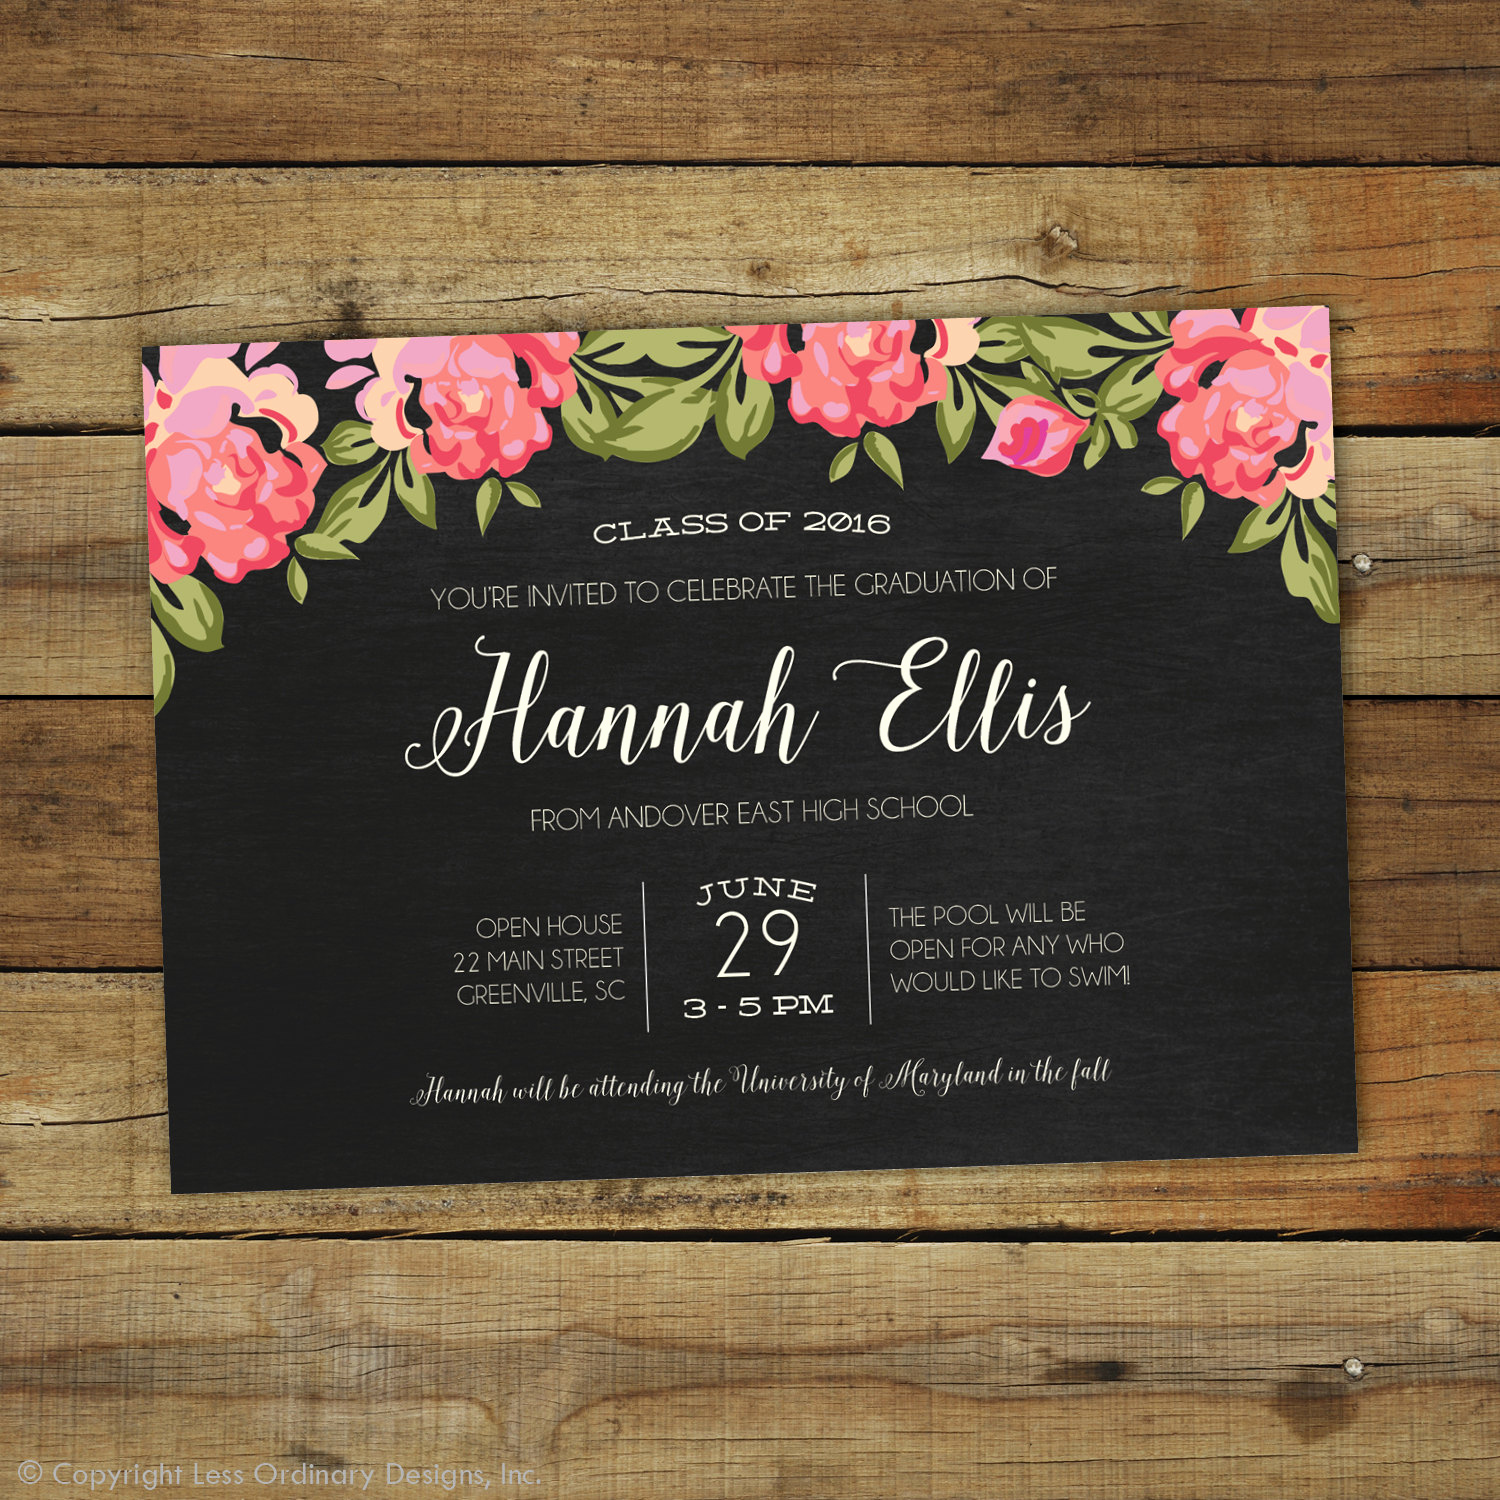 Free Graduation Invitation Maker Beautiful 2017 Graduation Party Invitation Floral Graduation Open House